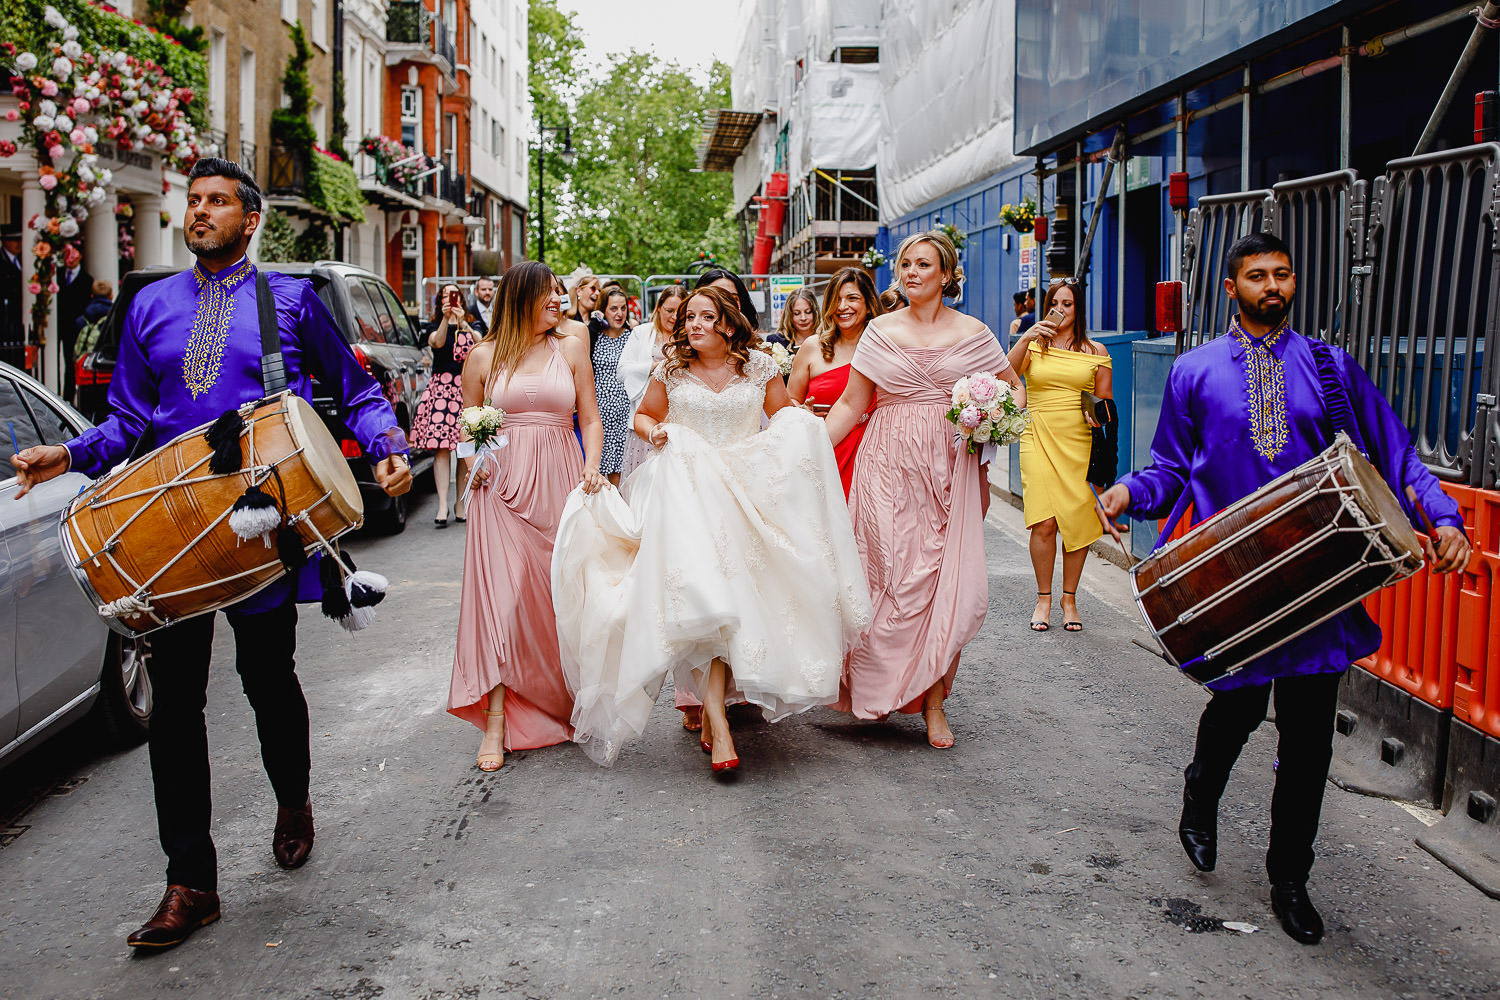 Bride is escorted by her bridesmaids and drummers.